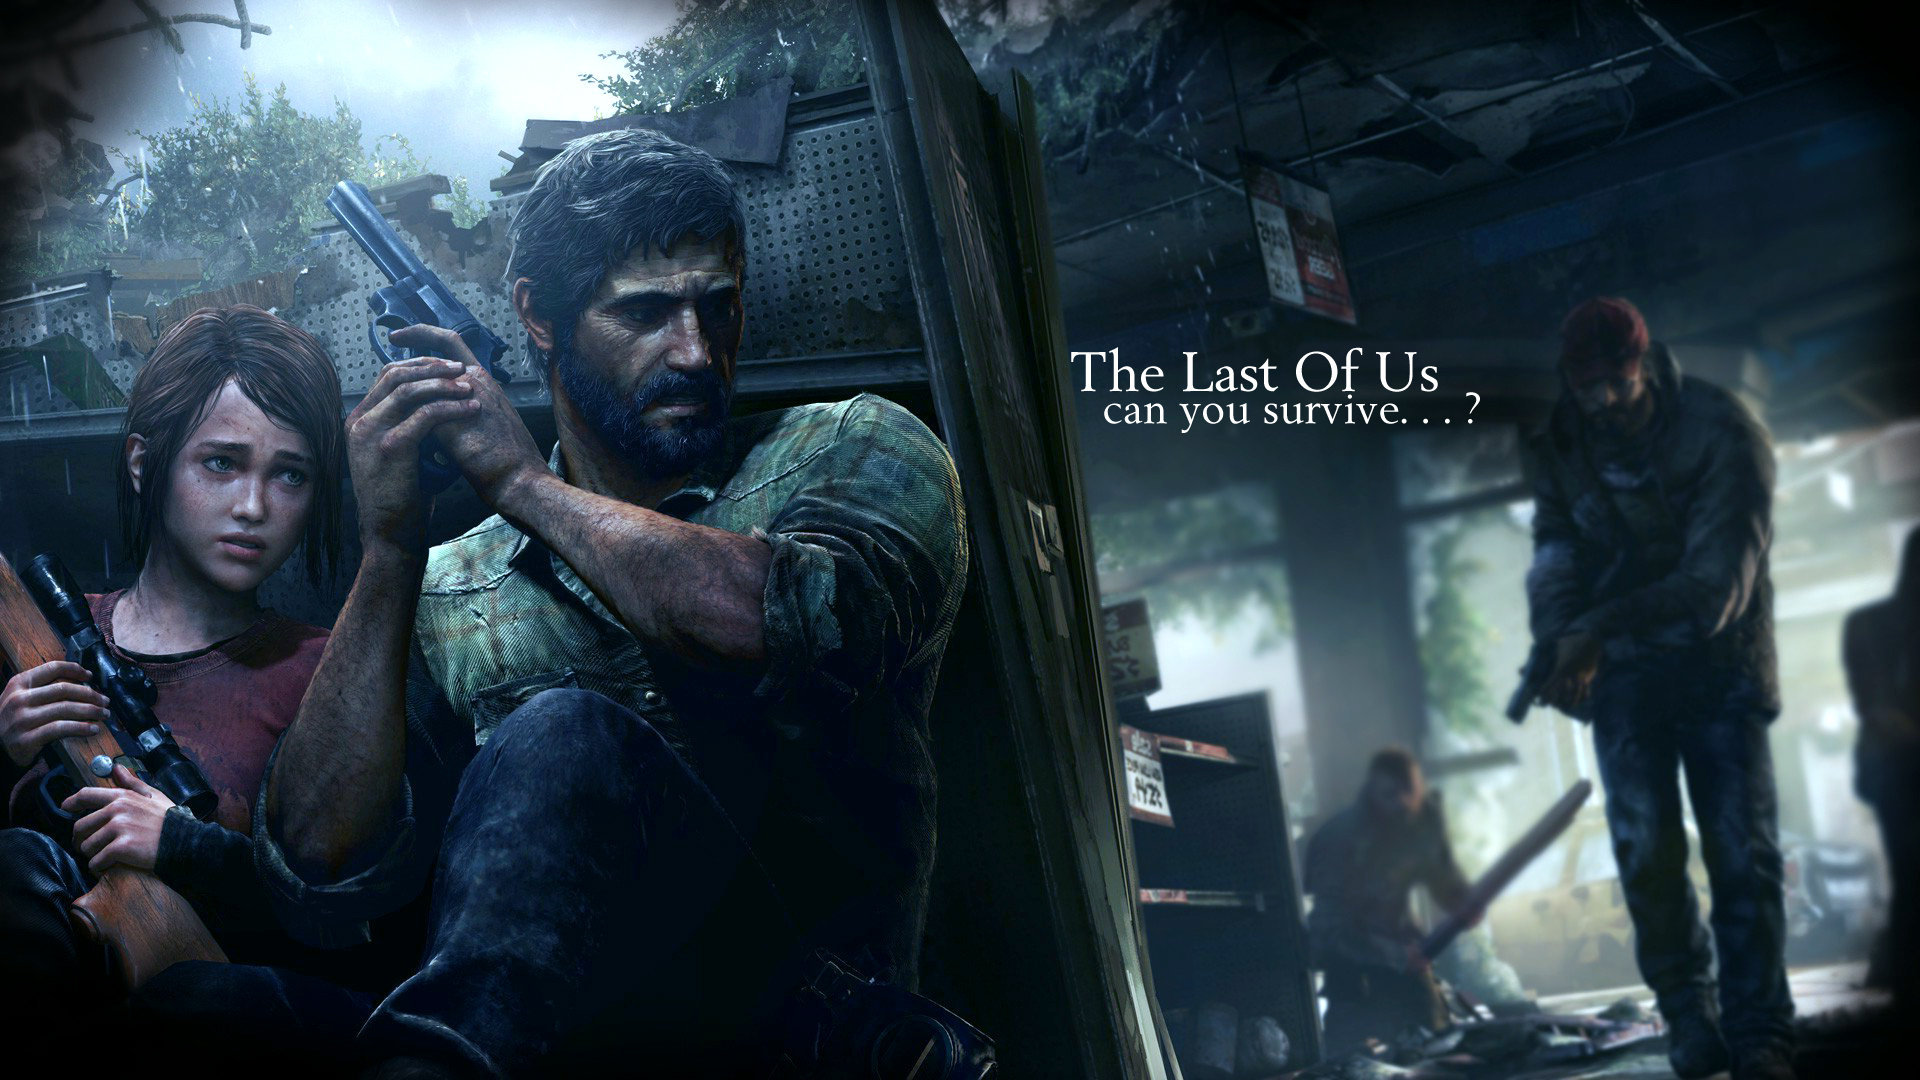 50 Last Of Us Wallpapers On Wallpapersafari